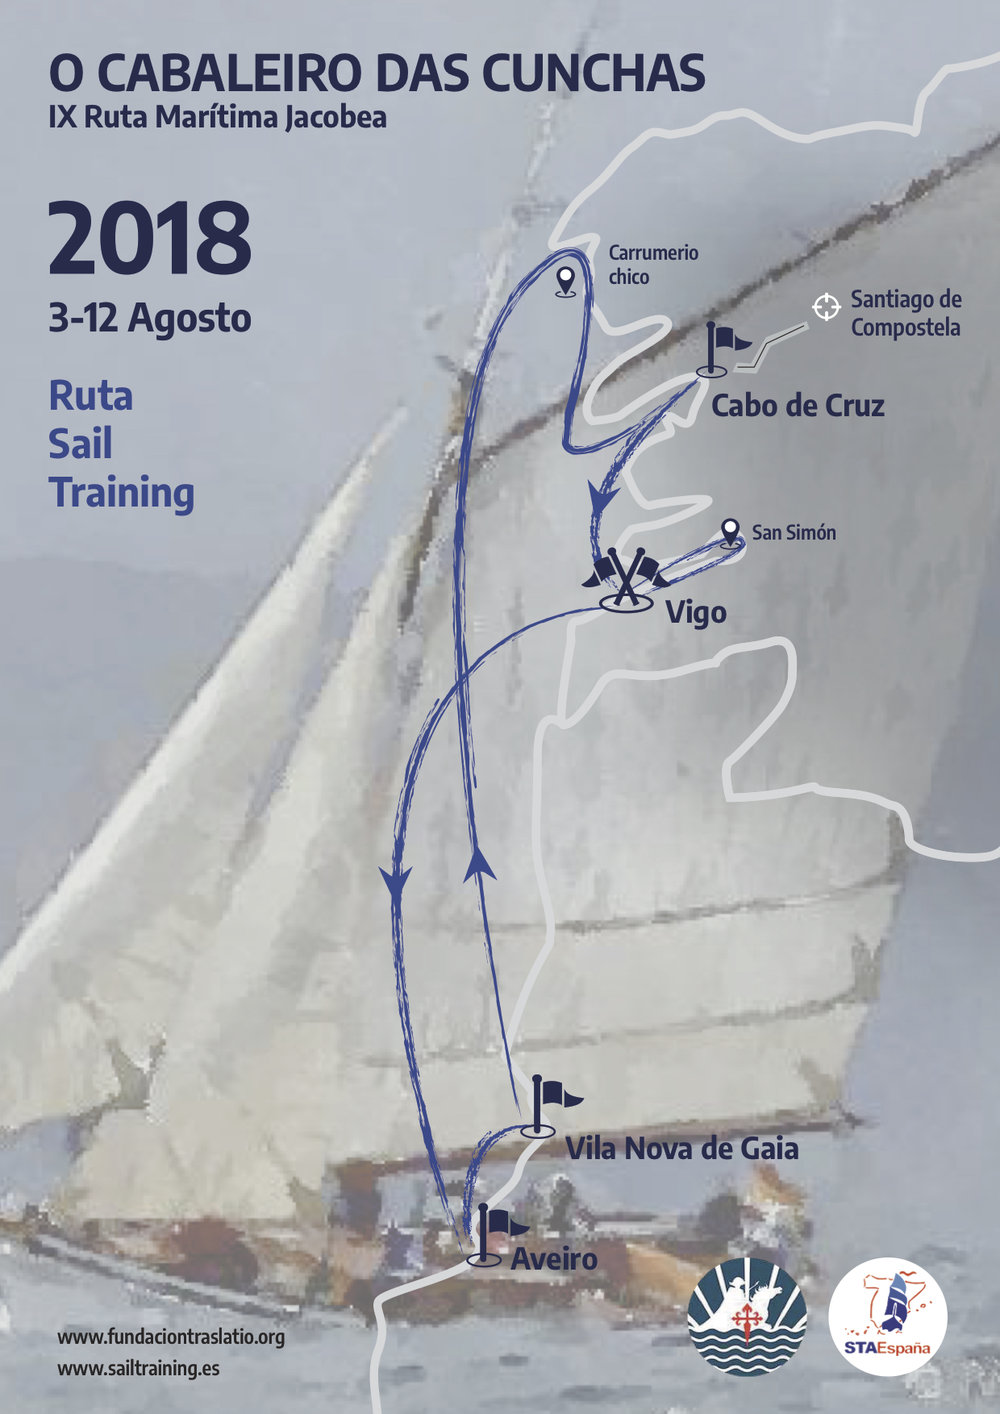 RUTA DO CABALEIRO - cartel_2018_sail training.jpg